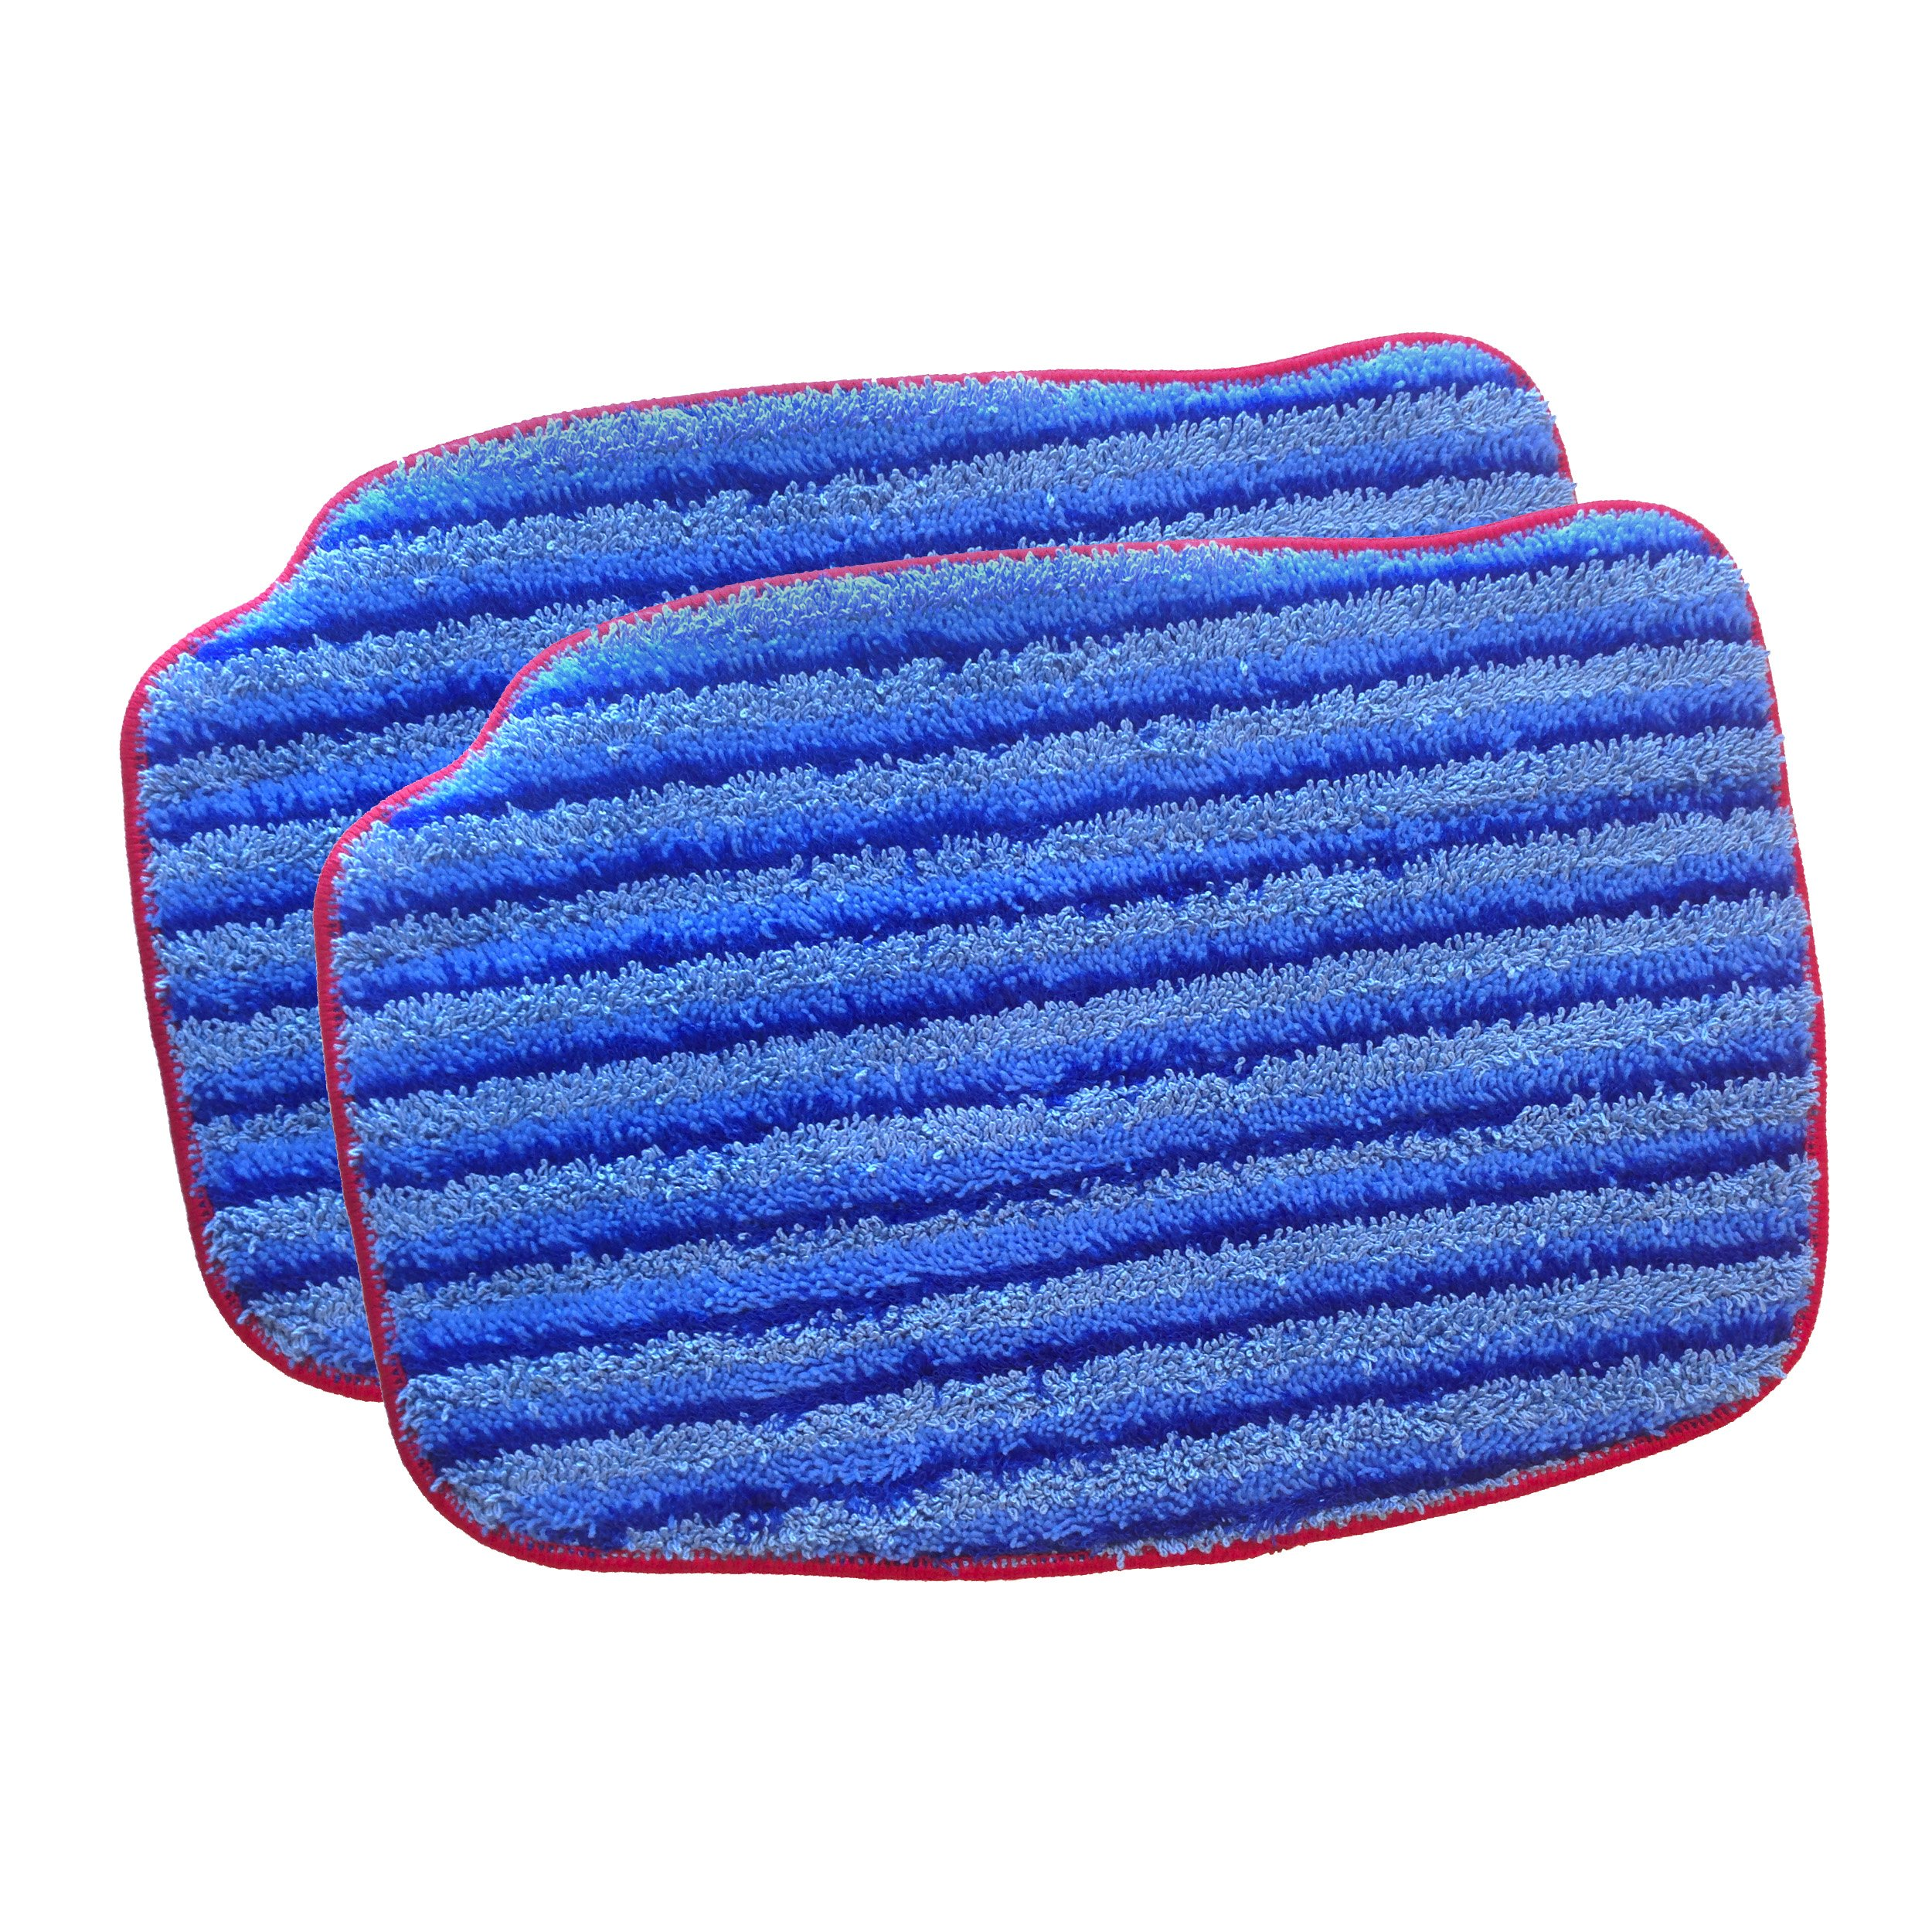 McCulloch A1375-101 Replacement Scrubbing Microfiber Mop Pad for MC1375, MC1385, 2-Pack by McCulloch